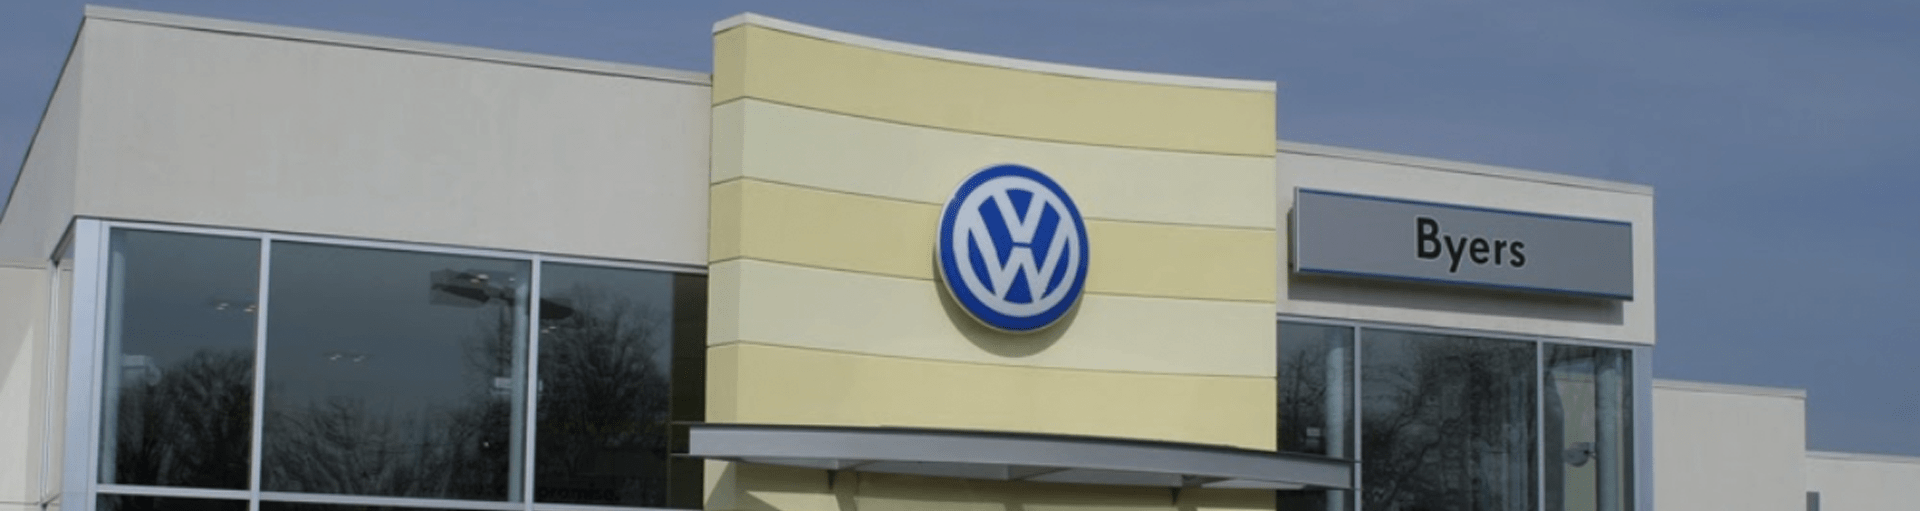 Byers Volkswagen Service Center